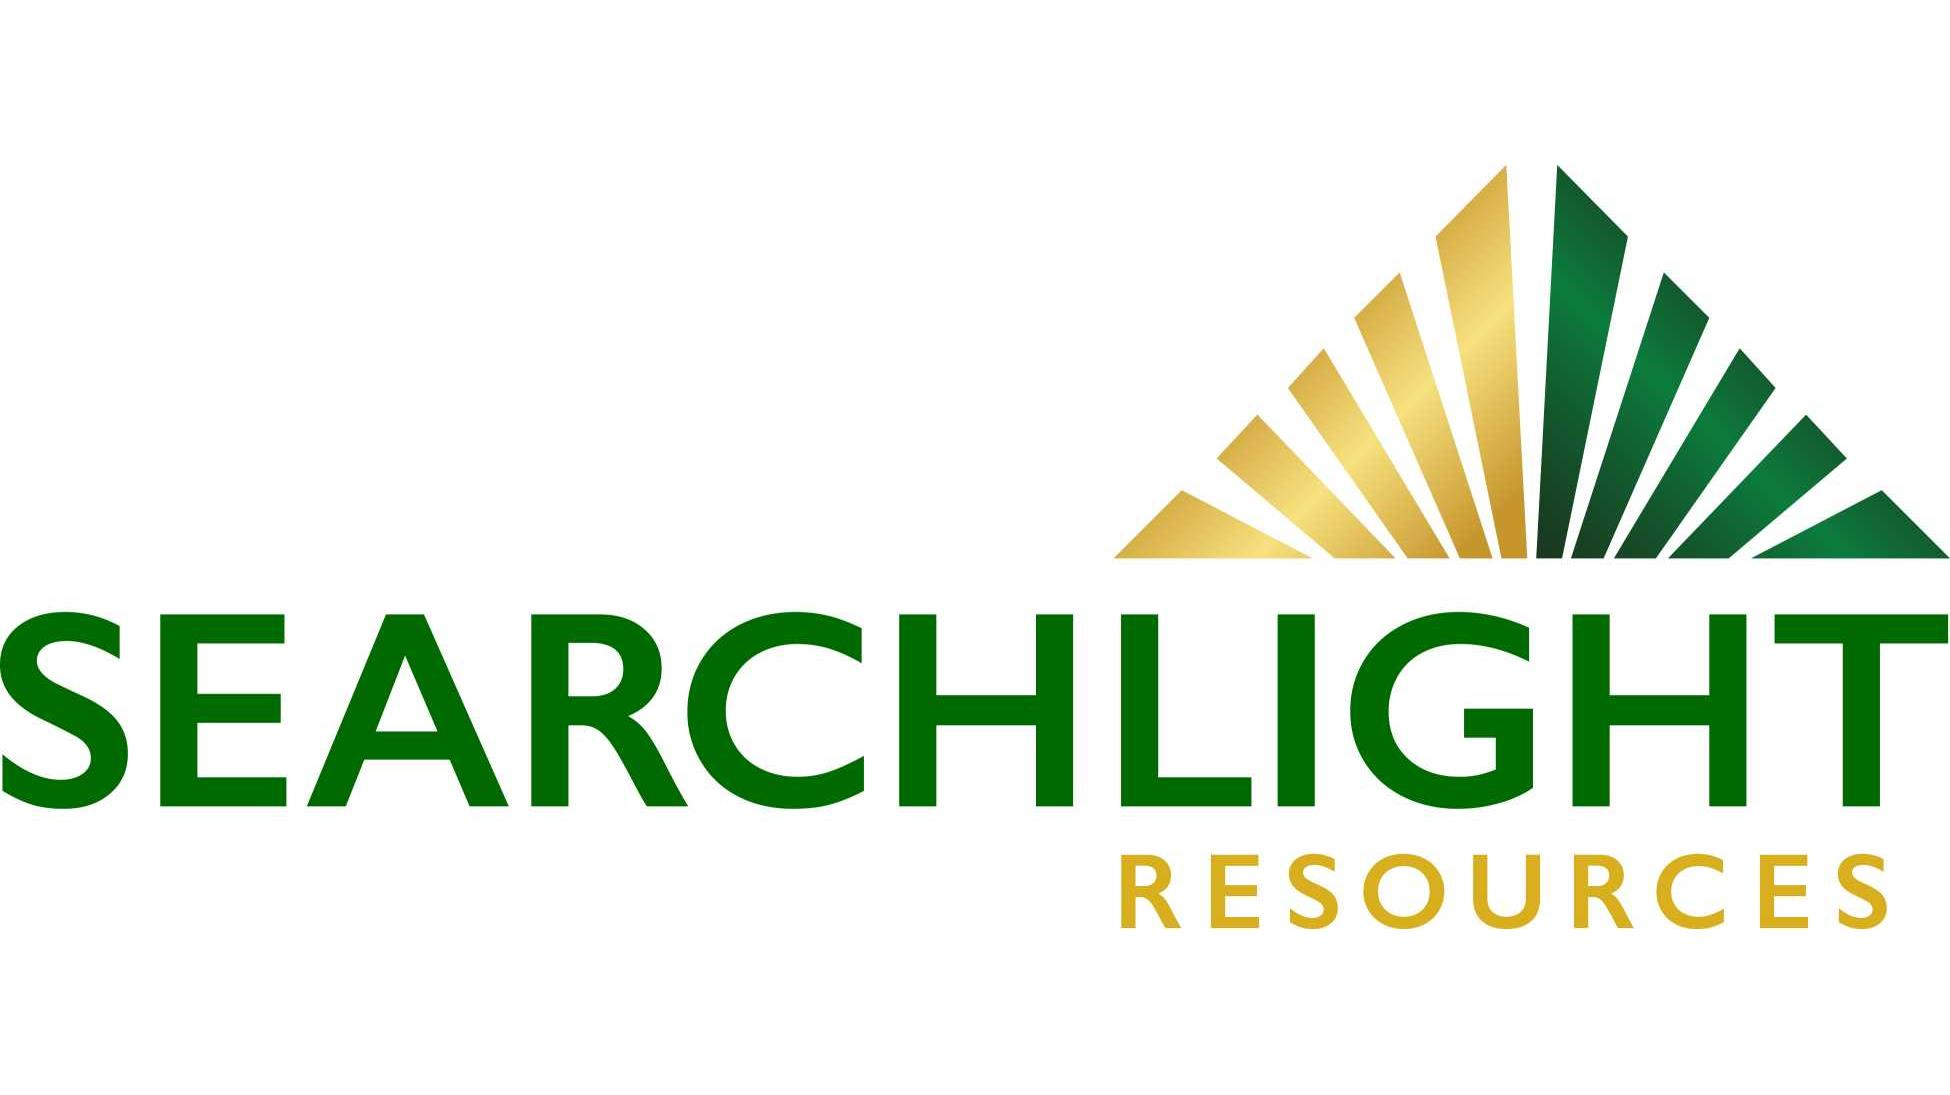 Searchlight Resources Announces 100% of Flow Through Warrants Exercised